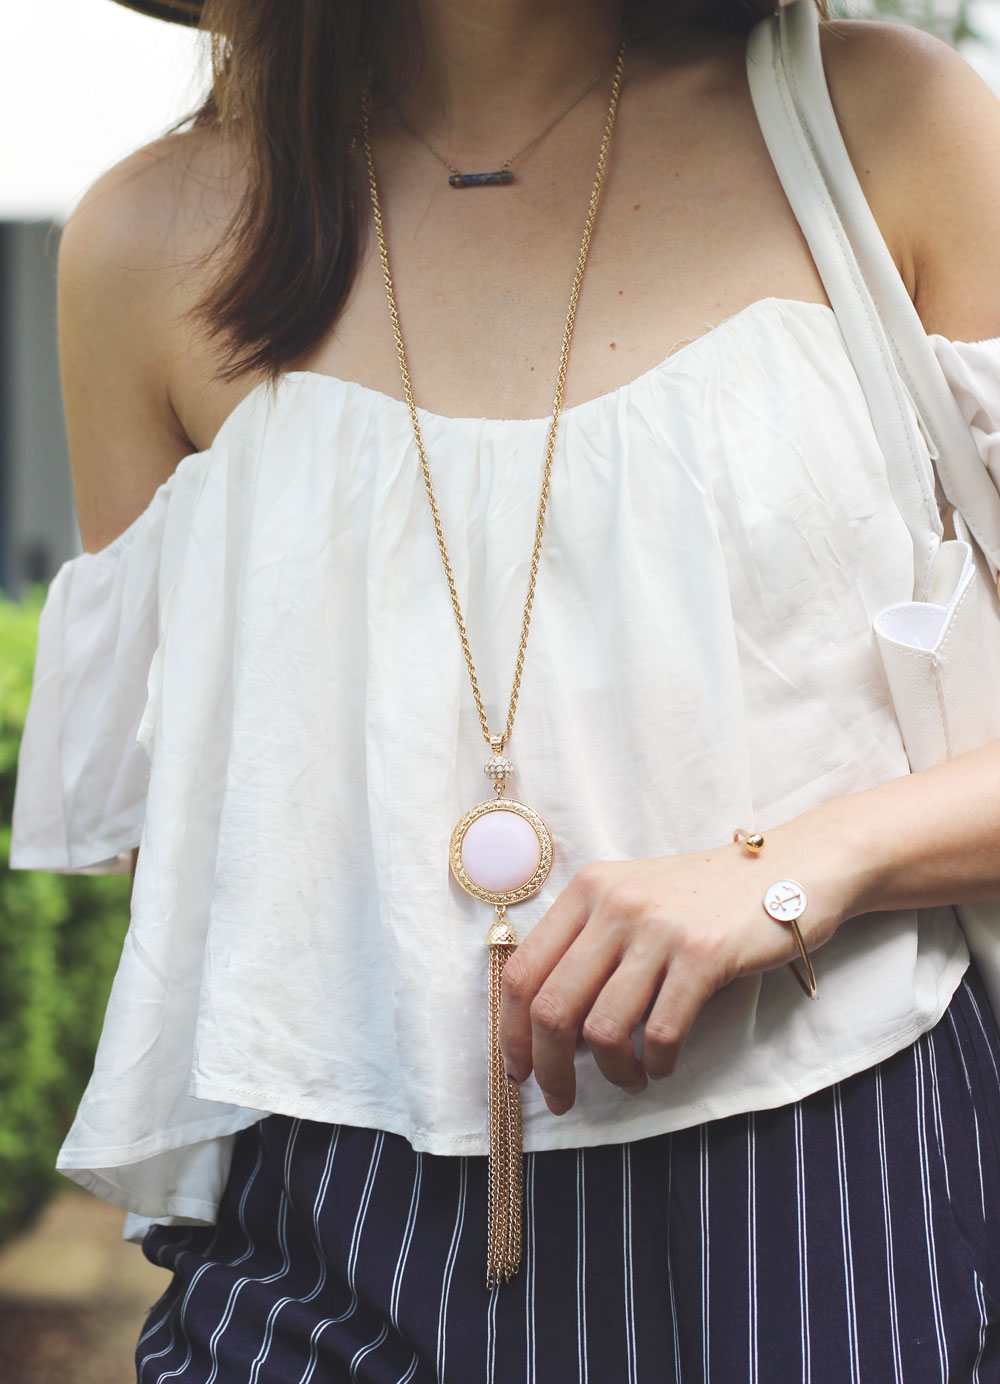 Marleylilly tote bag and monogram sunhat review plus giveaway of Marleylilly pendant necklace